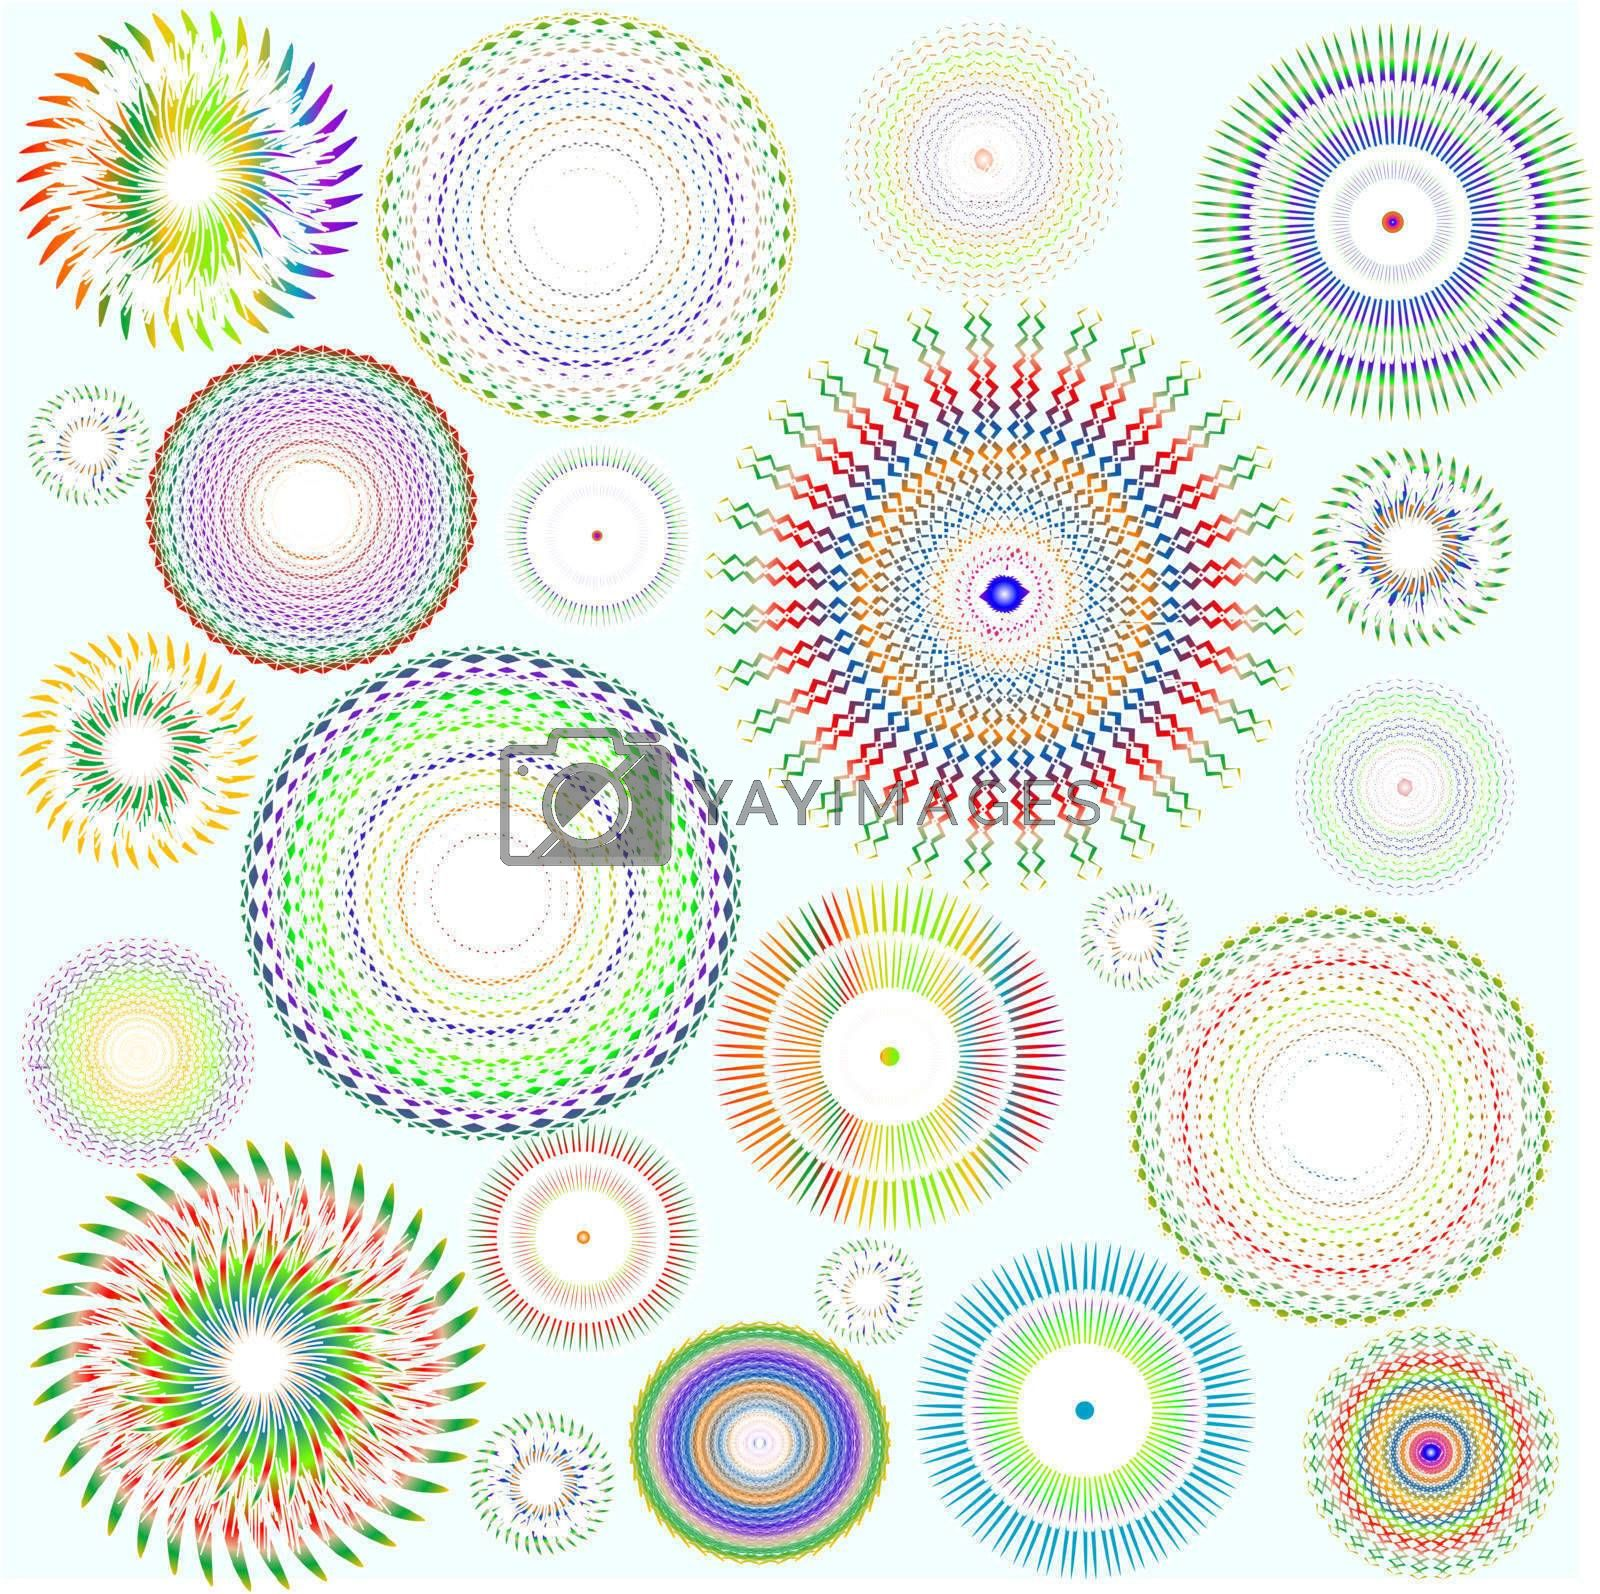 abstract vector background with beatiful floral design element